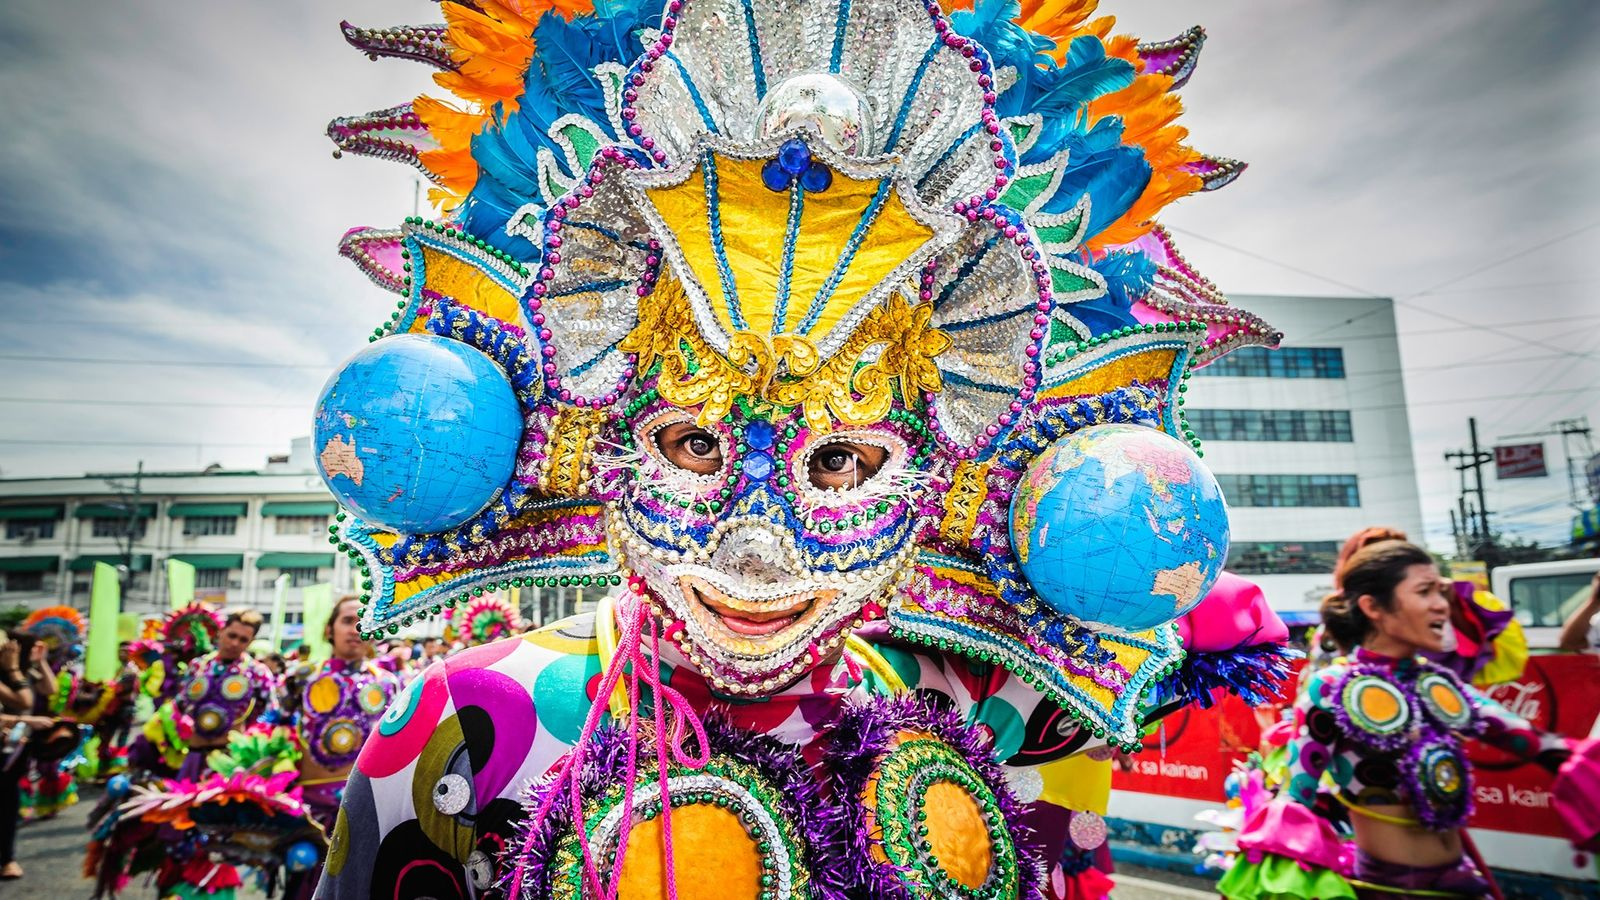 The island town of Kalibo in the Philippines turns into a Mardi Gras frenzy of sequined ...